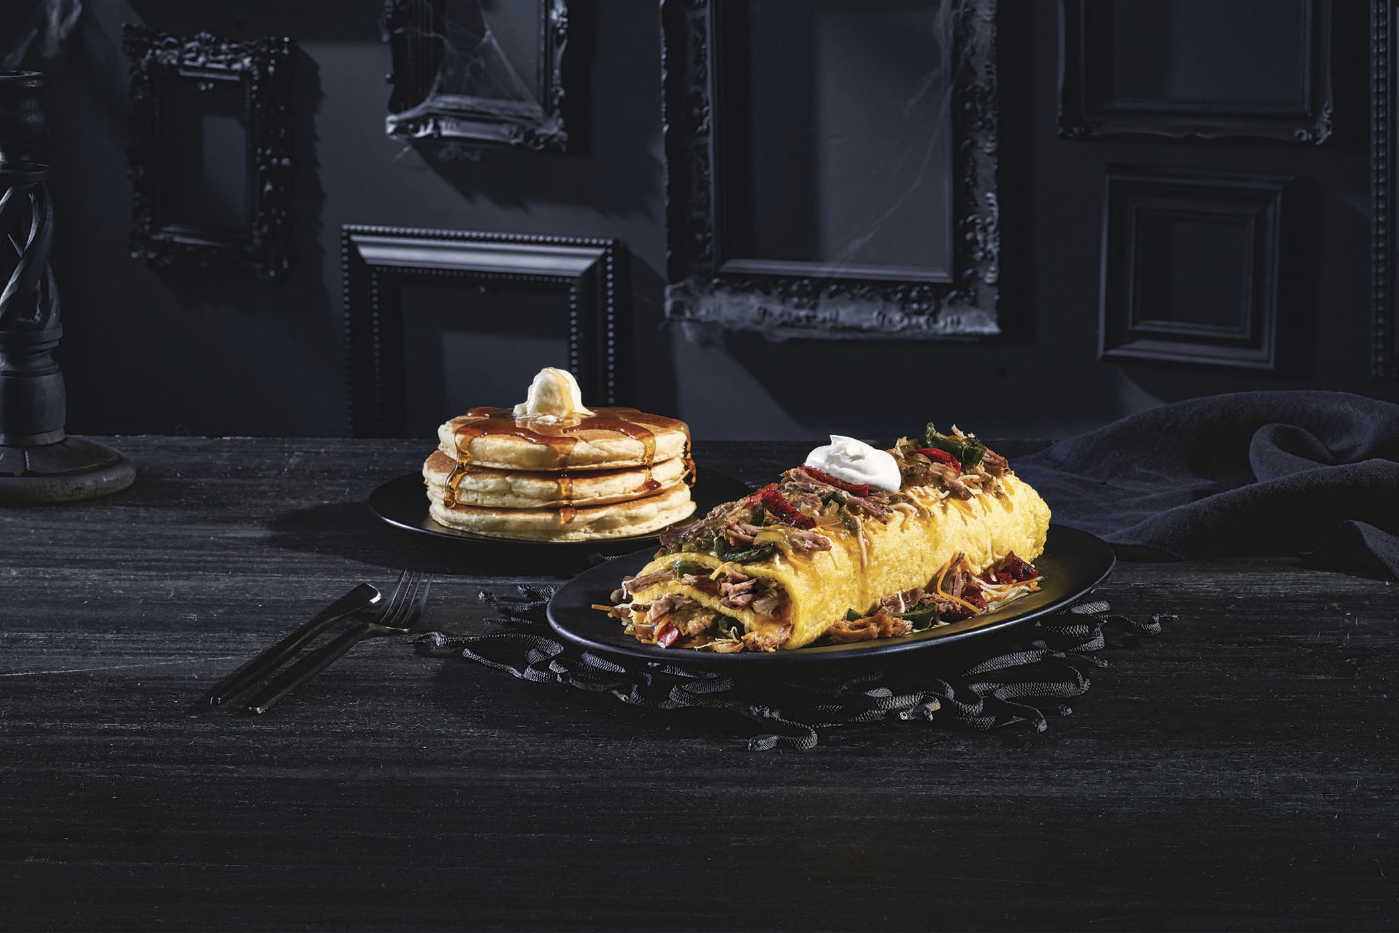 IHOP introduces dreadfully delicious menu items inspired by 'The Addams Family' // Photo courtesy of press release, linked to below